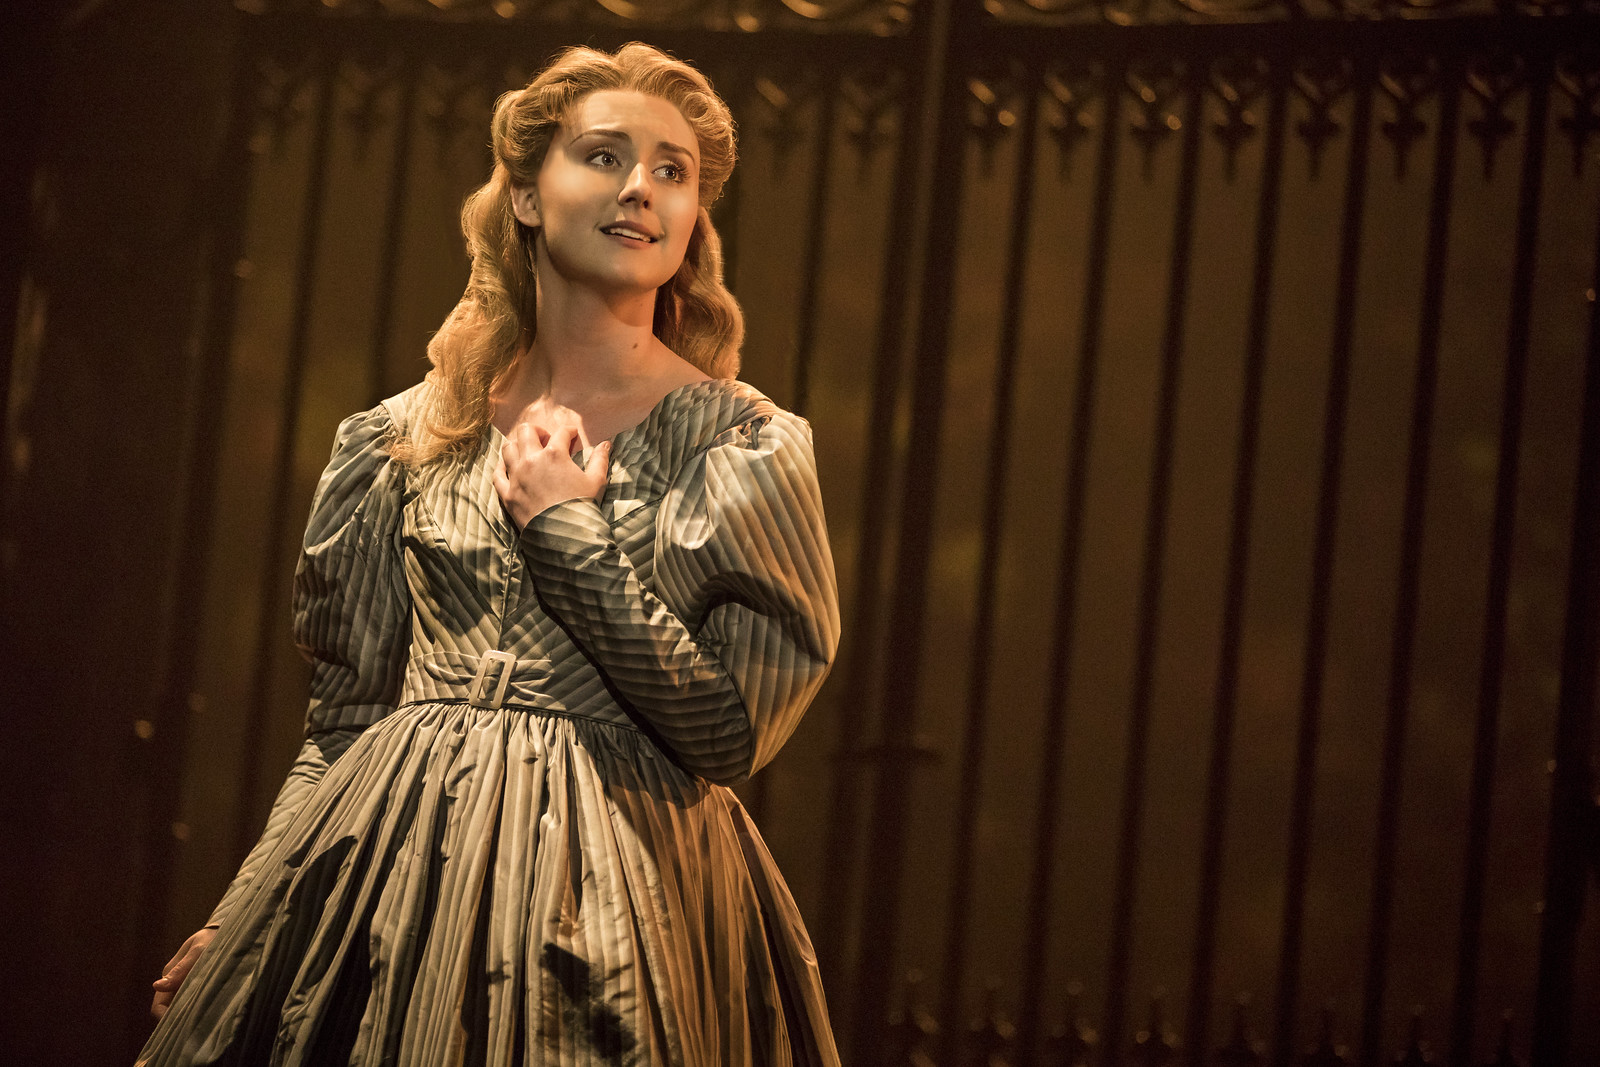 Jillian Butler as Cosette in the new national tour of Les Miserables (photo: Matthew Murphy) // Broadway in Detroit: Les Miserables At The Fisher Theatre - Wading in Big Shoes